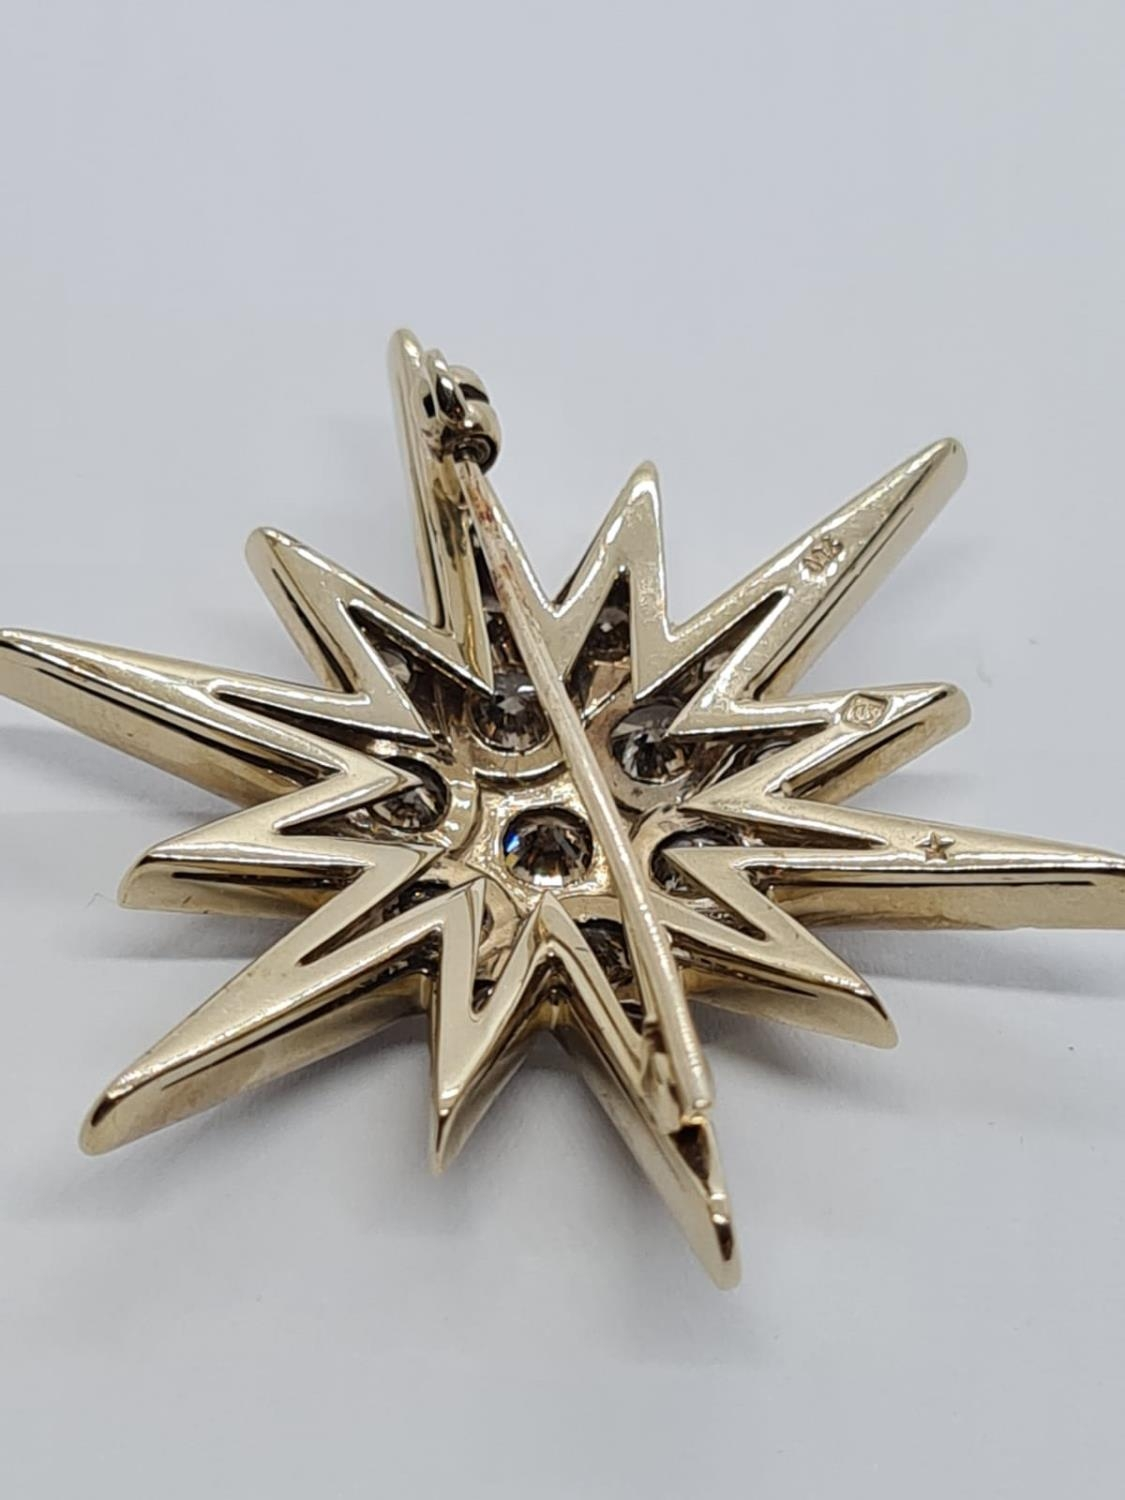 Vintage 18ct Gold Star Brooch with 3 ct of Diamonds. Weight 8.2g 3.5 cm. - Image 5 of 6